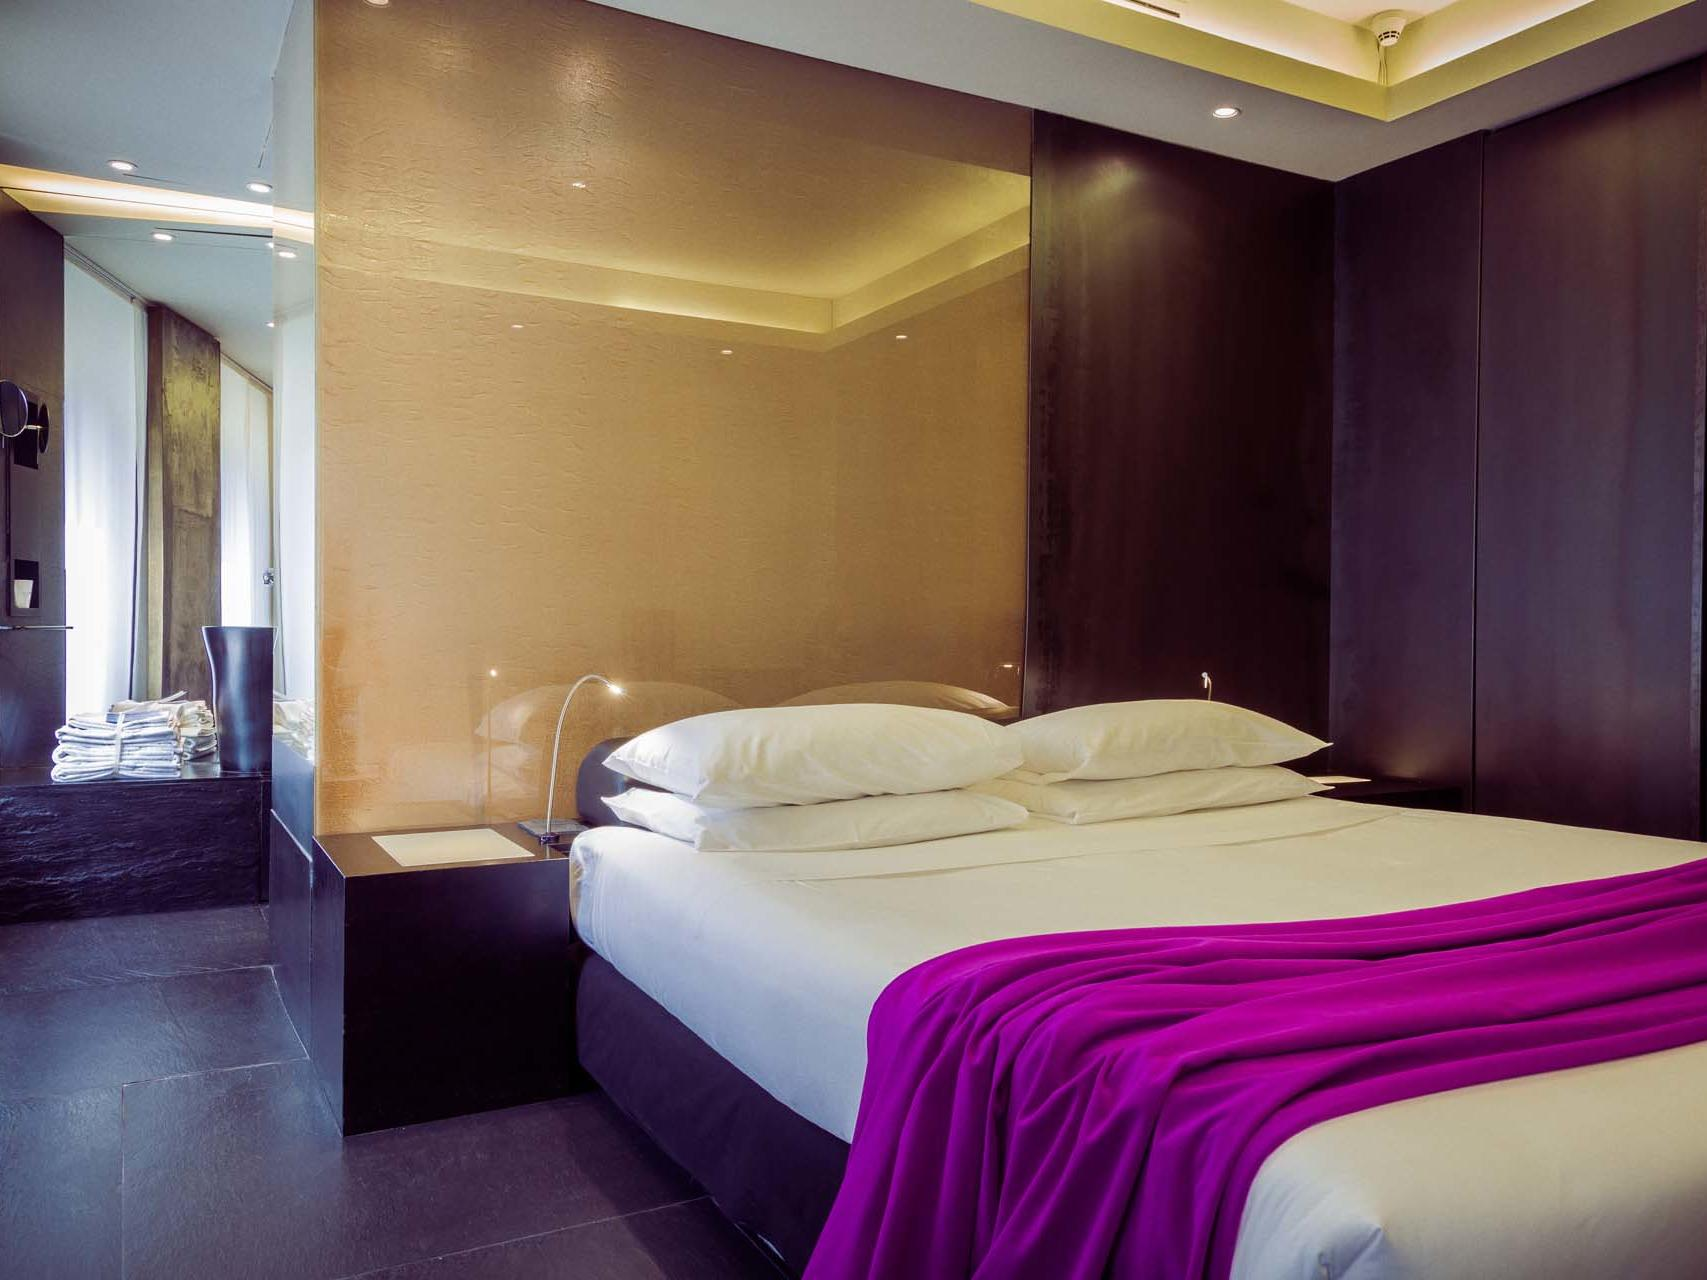 Superior Double Room at STRAFhotel&bar in Milan centre